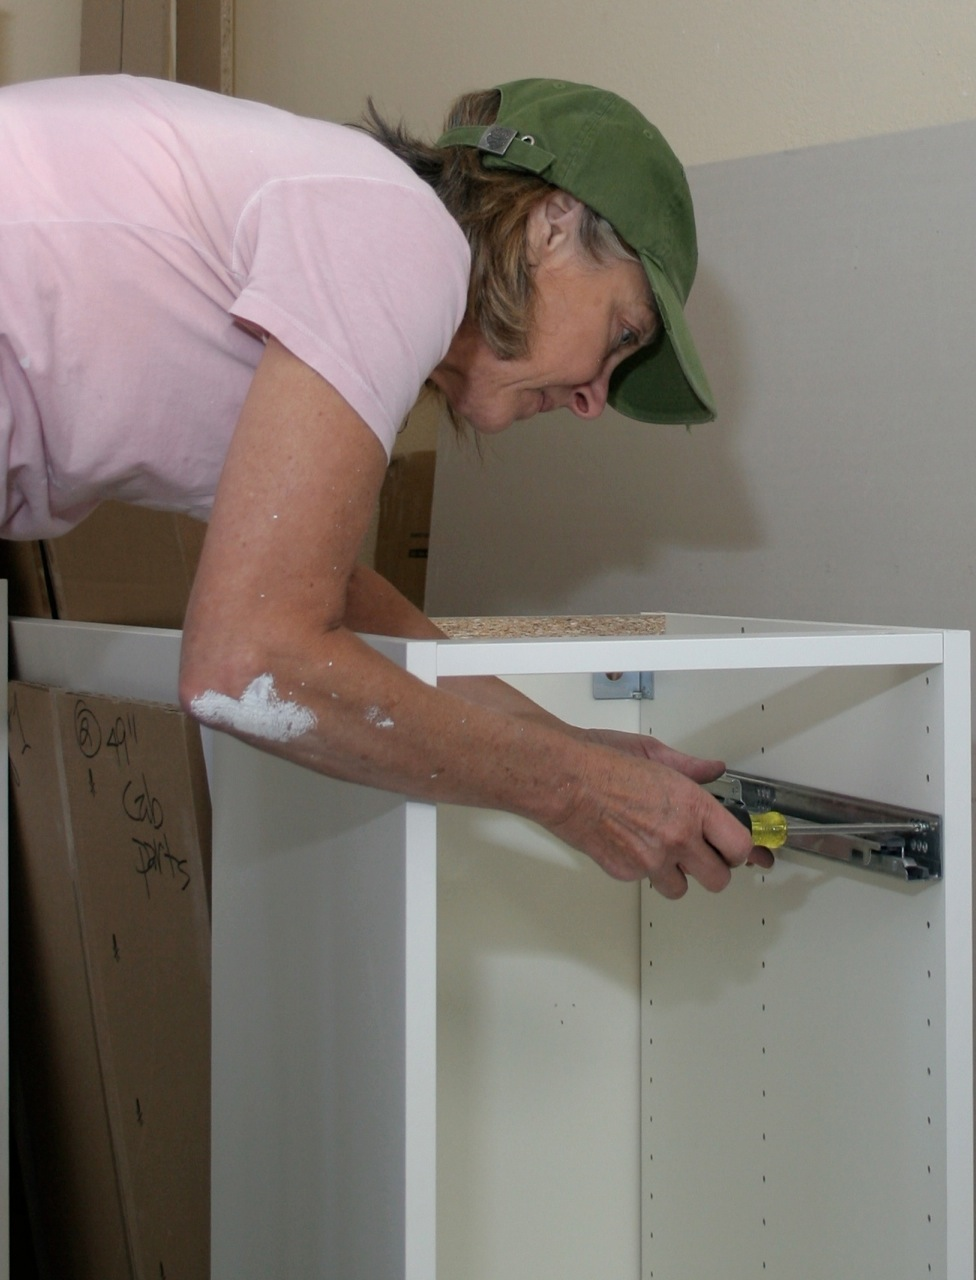 12 Tips on Ordering and Installing IKEA Cabinets - Part 2